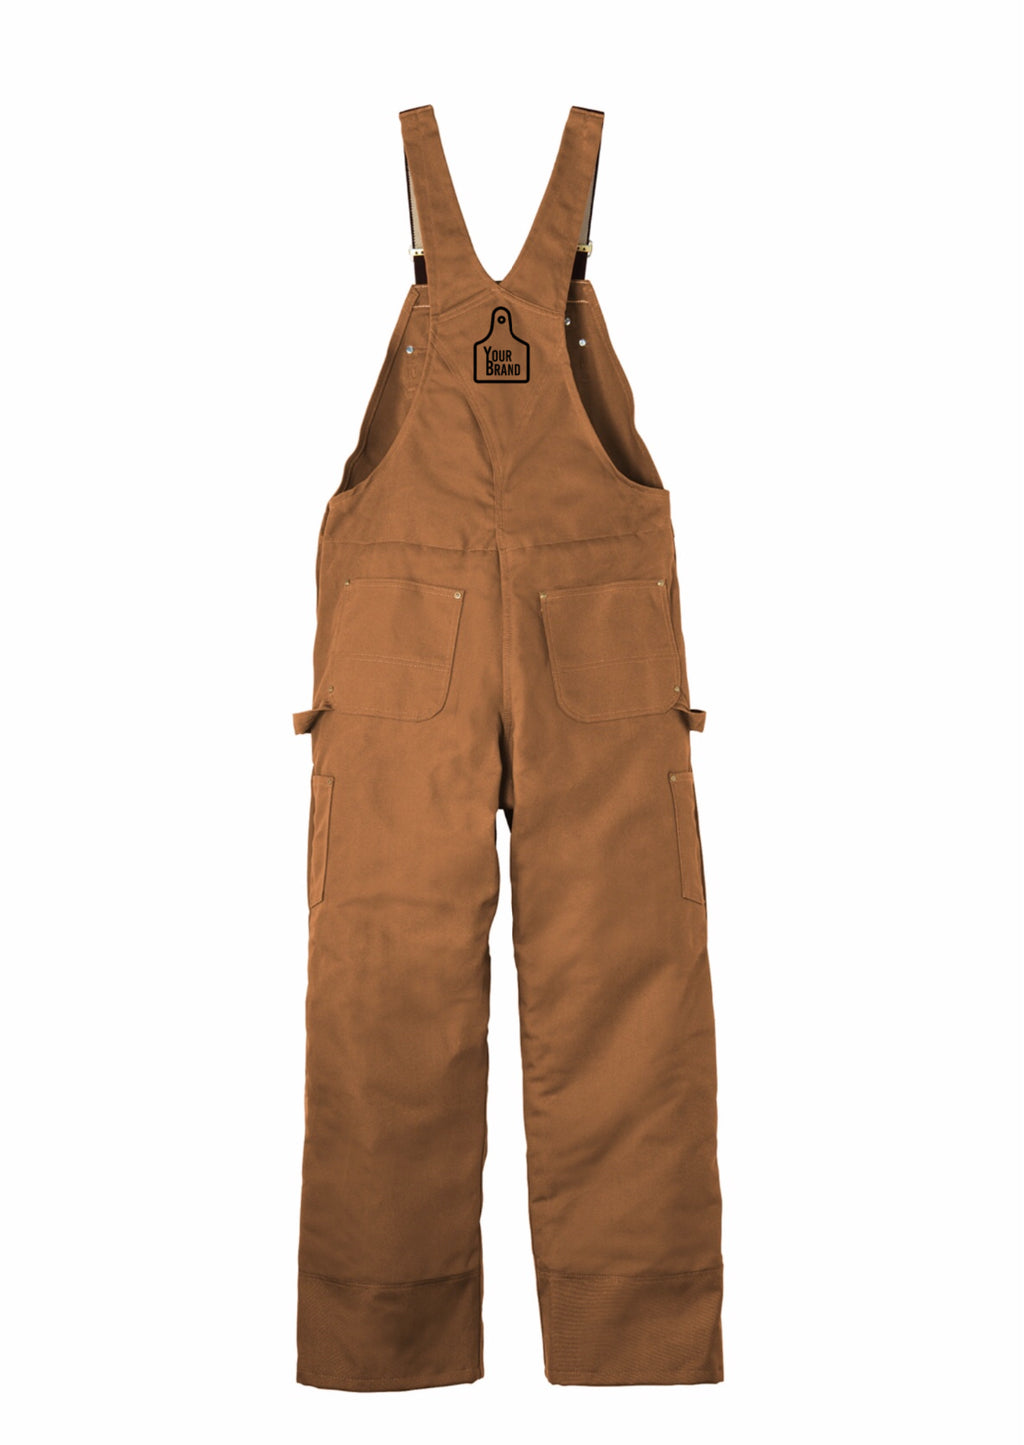 Cow Tag Carhartt Duck Quilt-Lined Zip-To-Thigh Bib Overalls